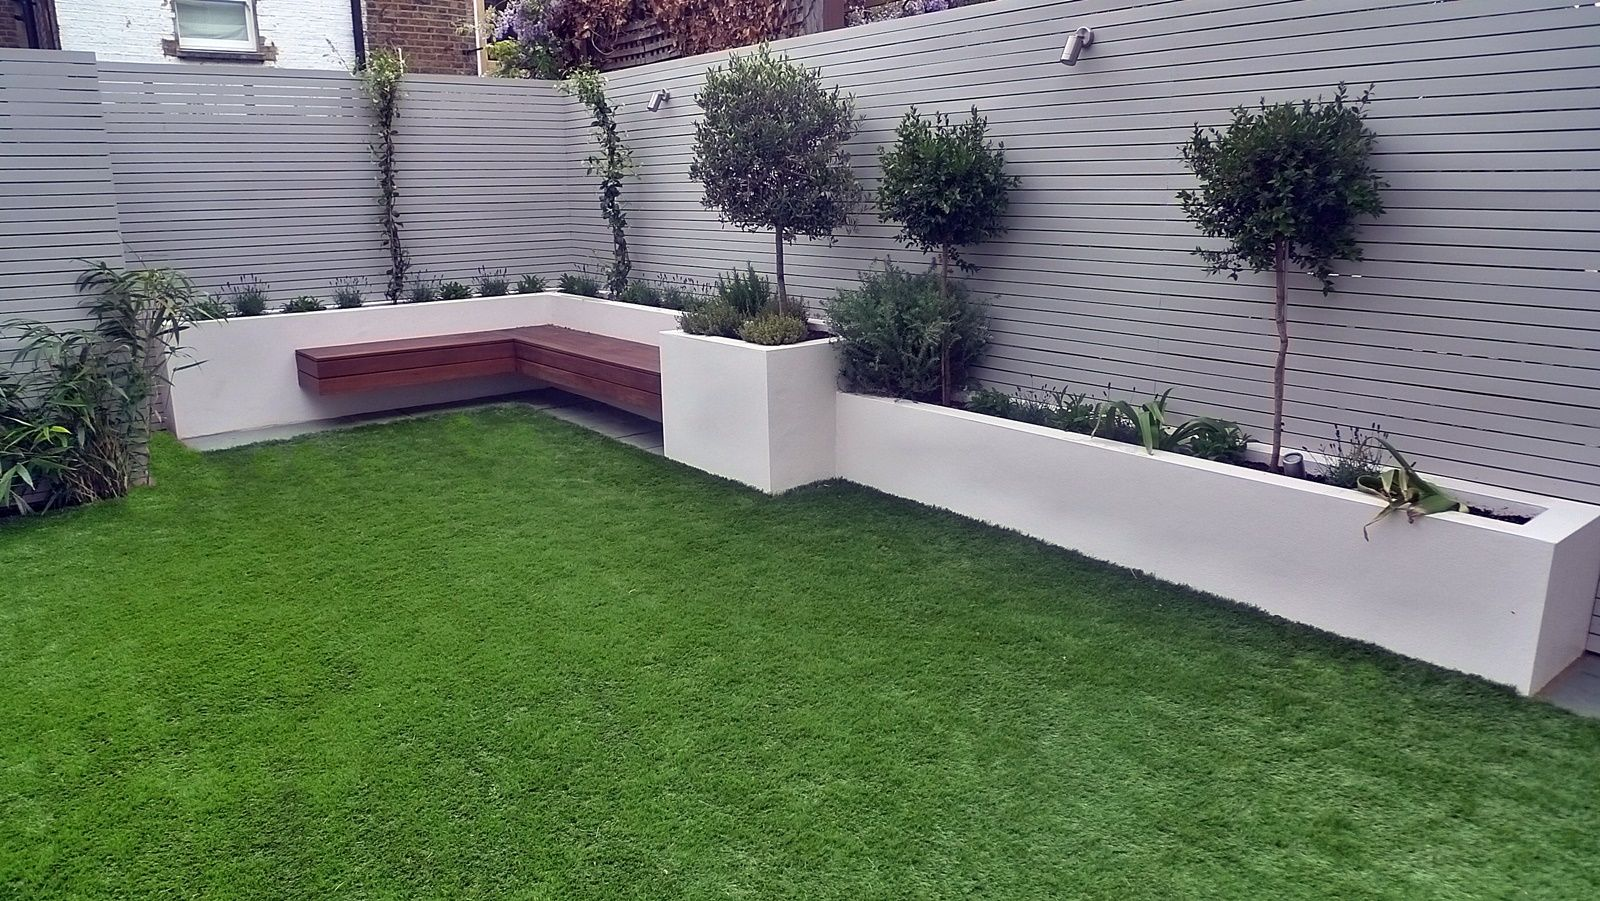 Garden Designers London Painting Pleasing Modern Garden Design Raised Beds Slatted Privacy Screen Trellis . Inspiration